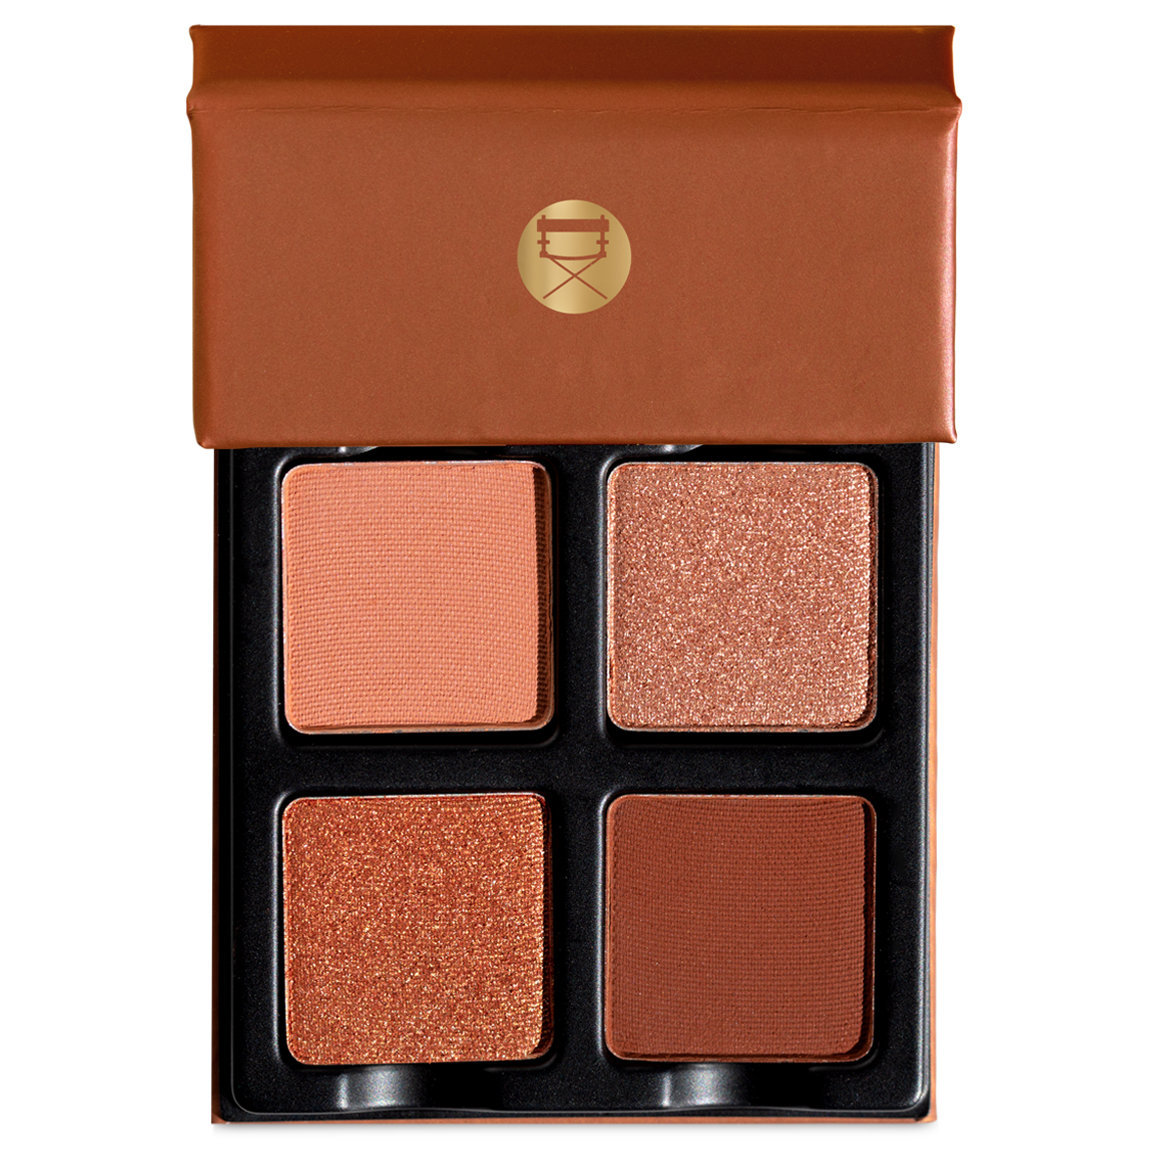 Viseart Petits Fours Palette Chocolat alternative view 1 - product swatch.